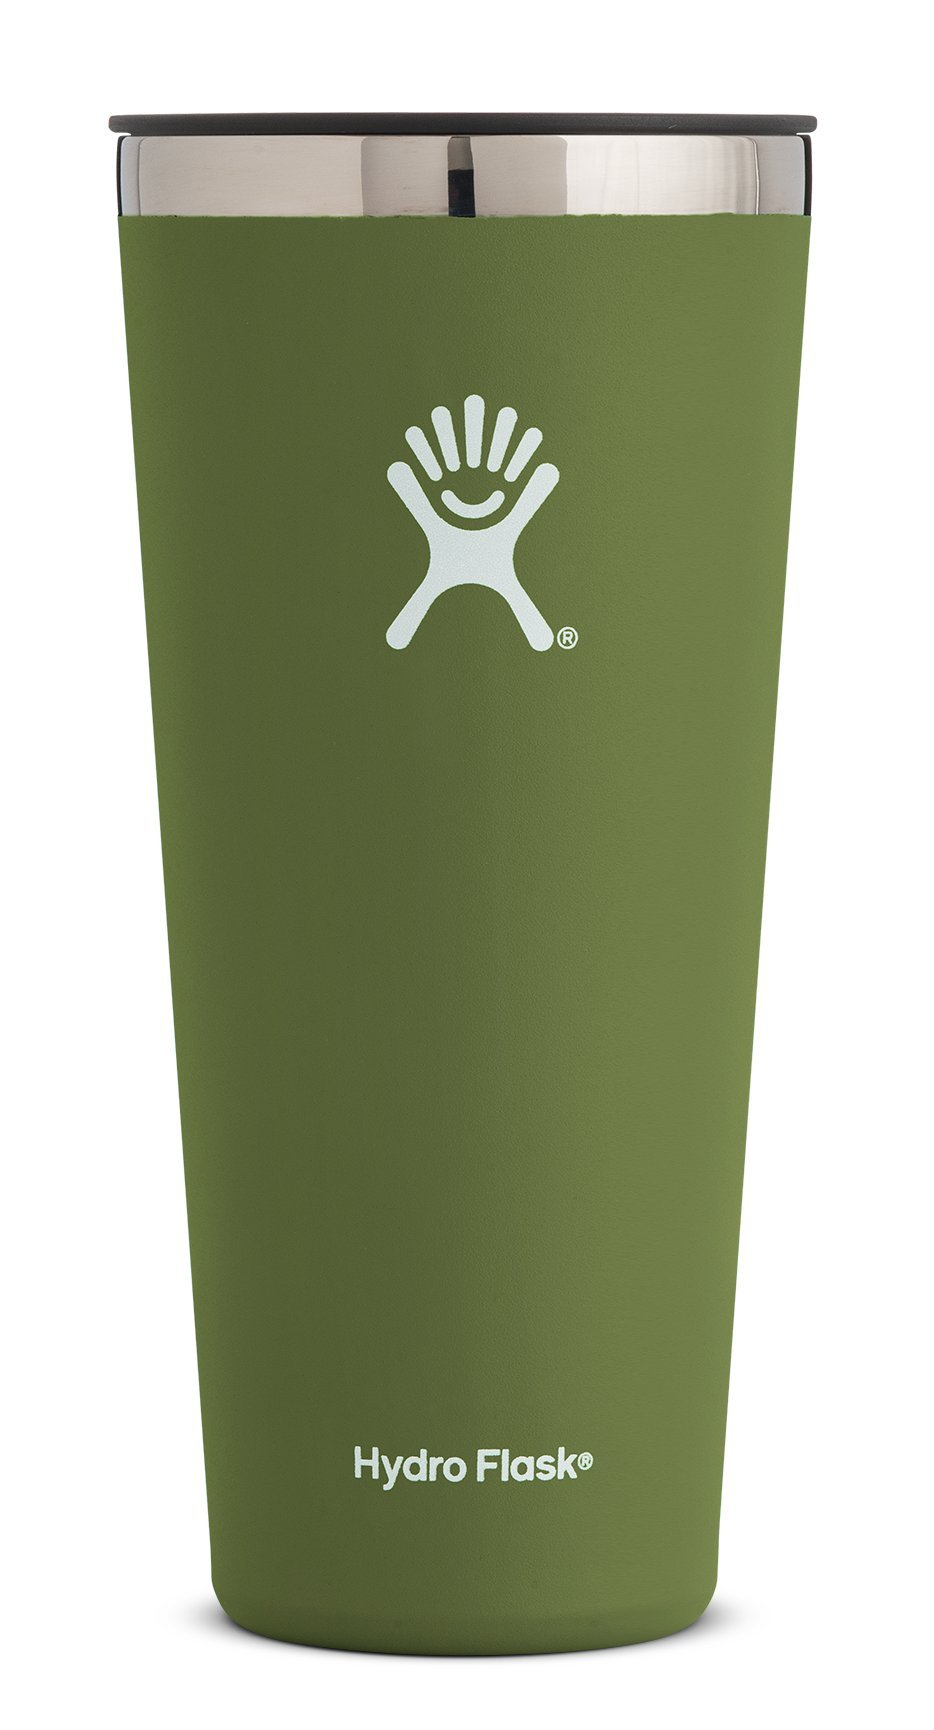 Hydro Flask 32 oz Tumbler Cup - Stainless Steel & Vacuum Insulated - Press-In Lid - Olive